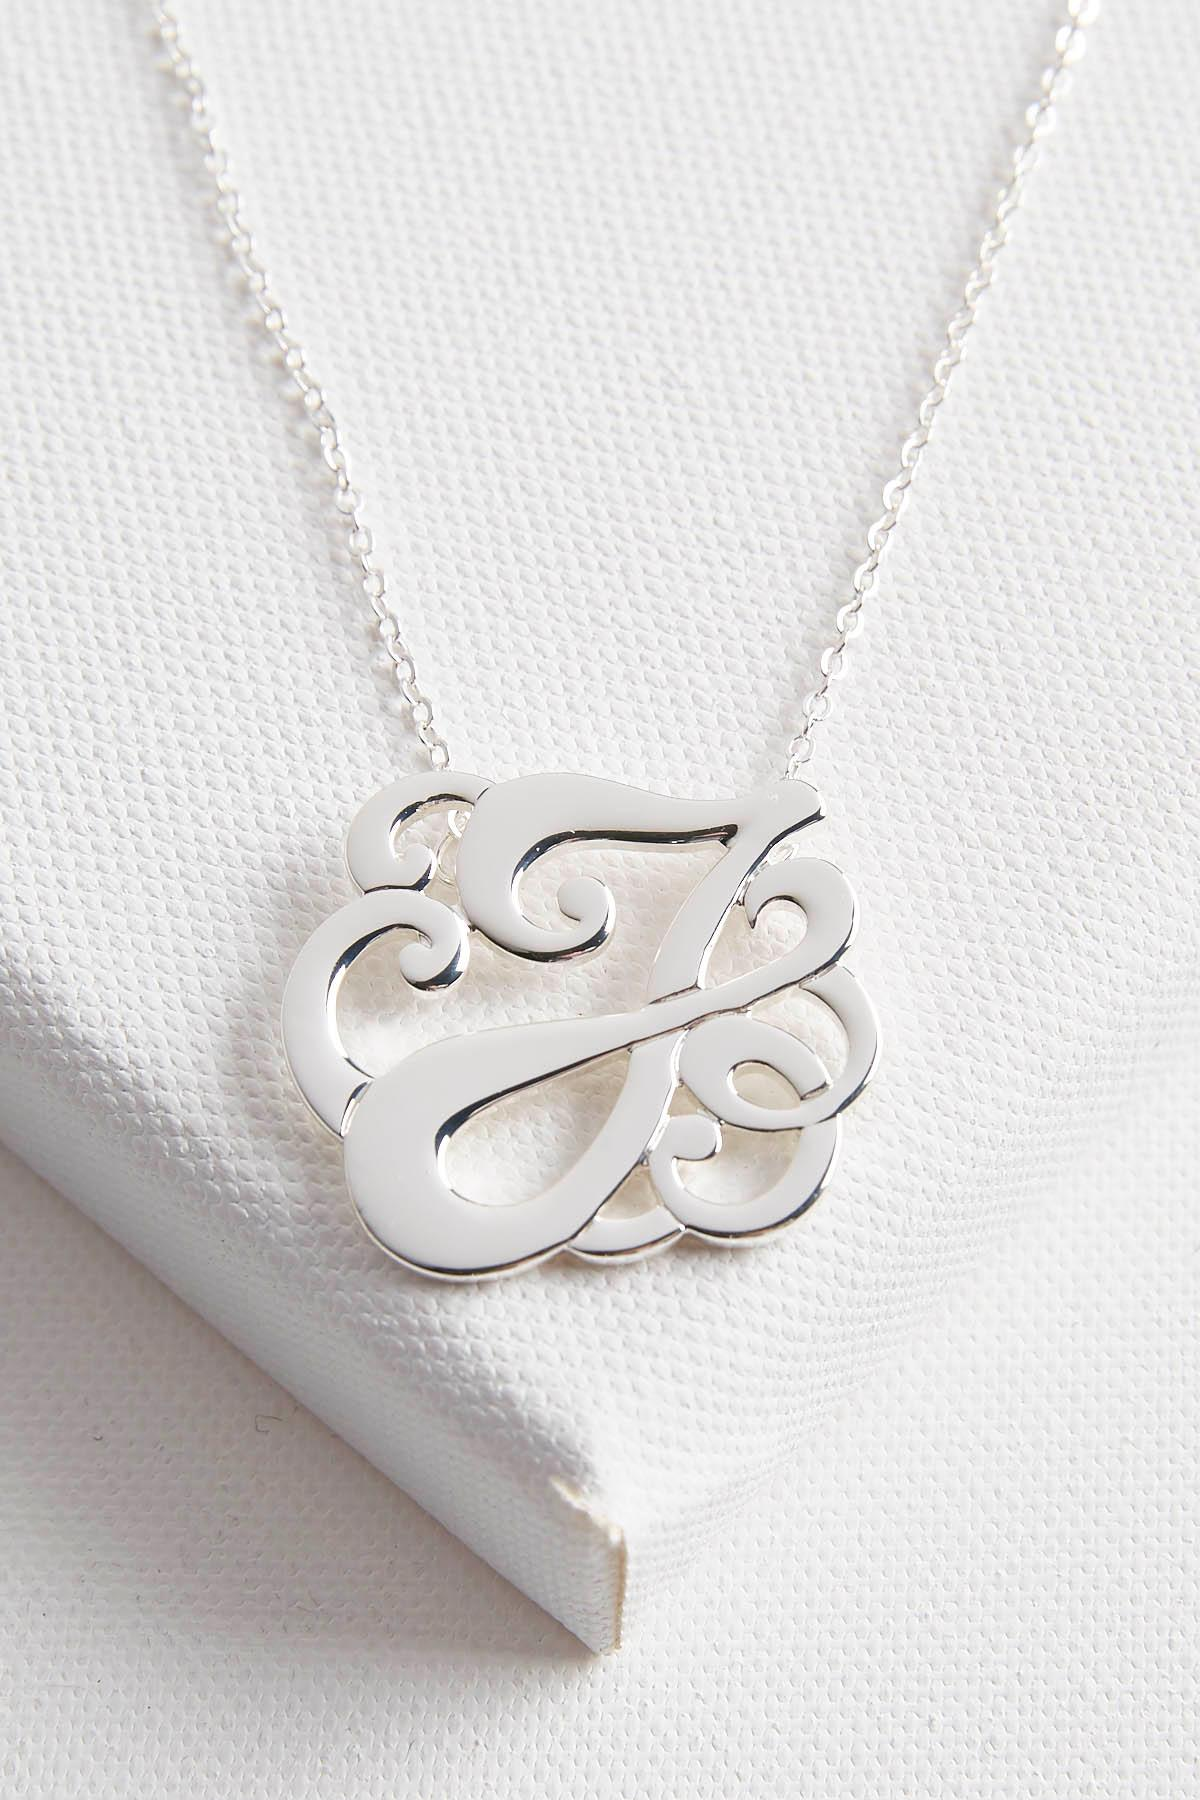 Initial Scroll Brass Pendant Necklace- J